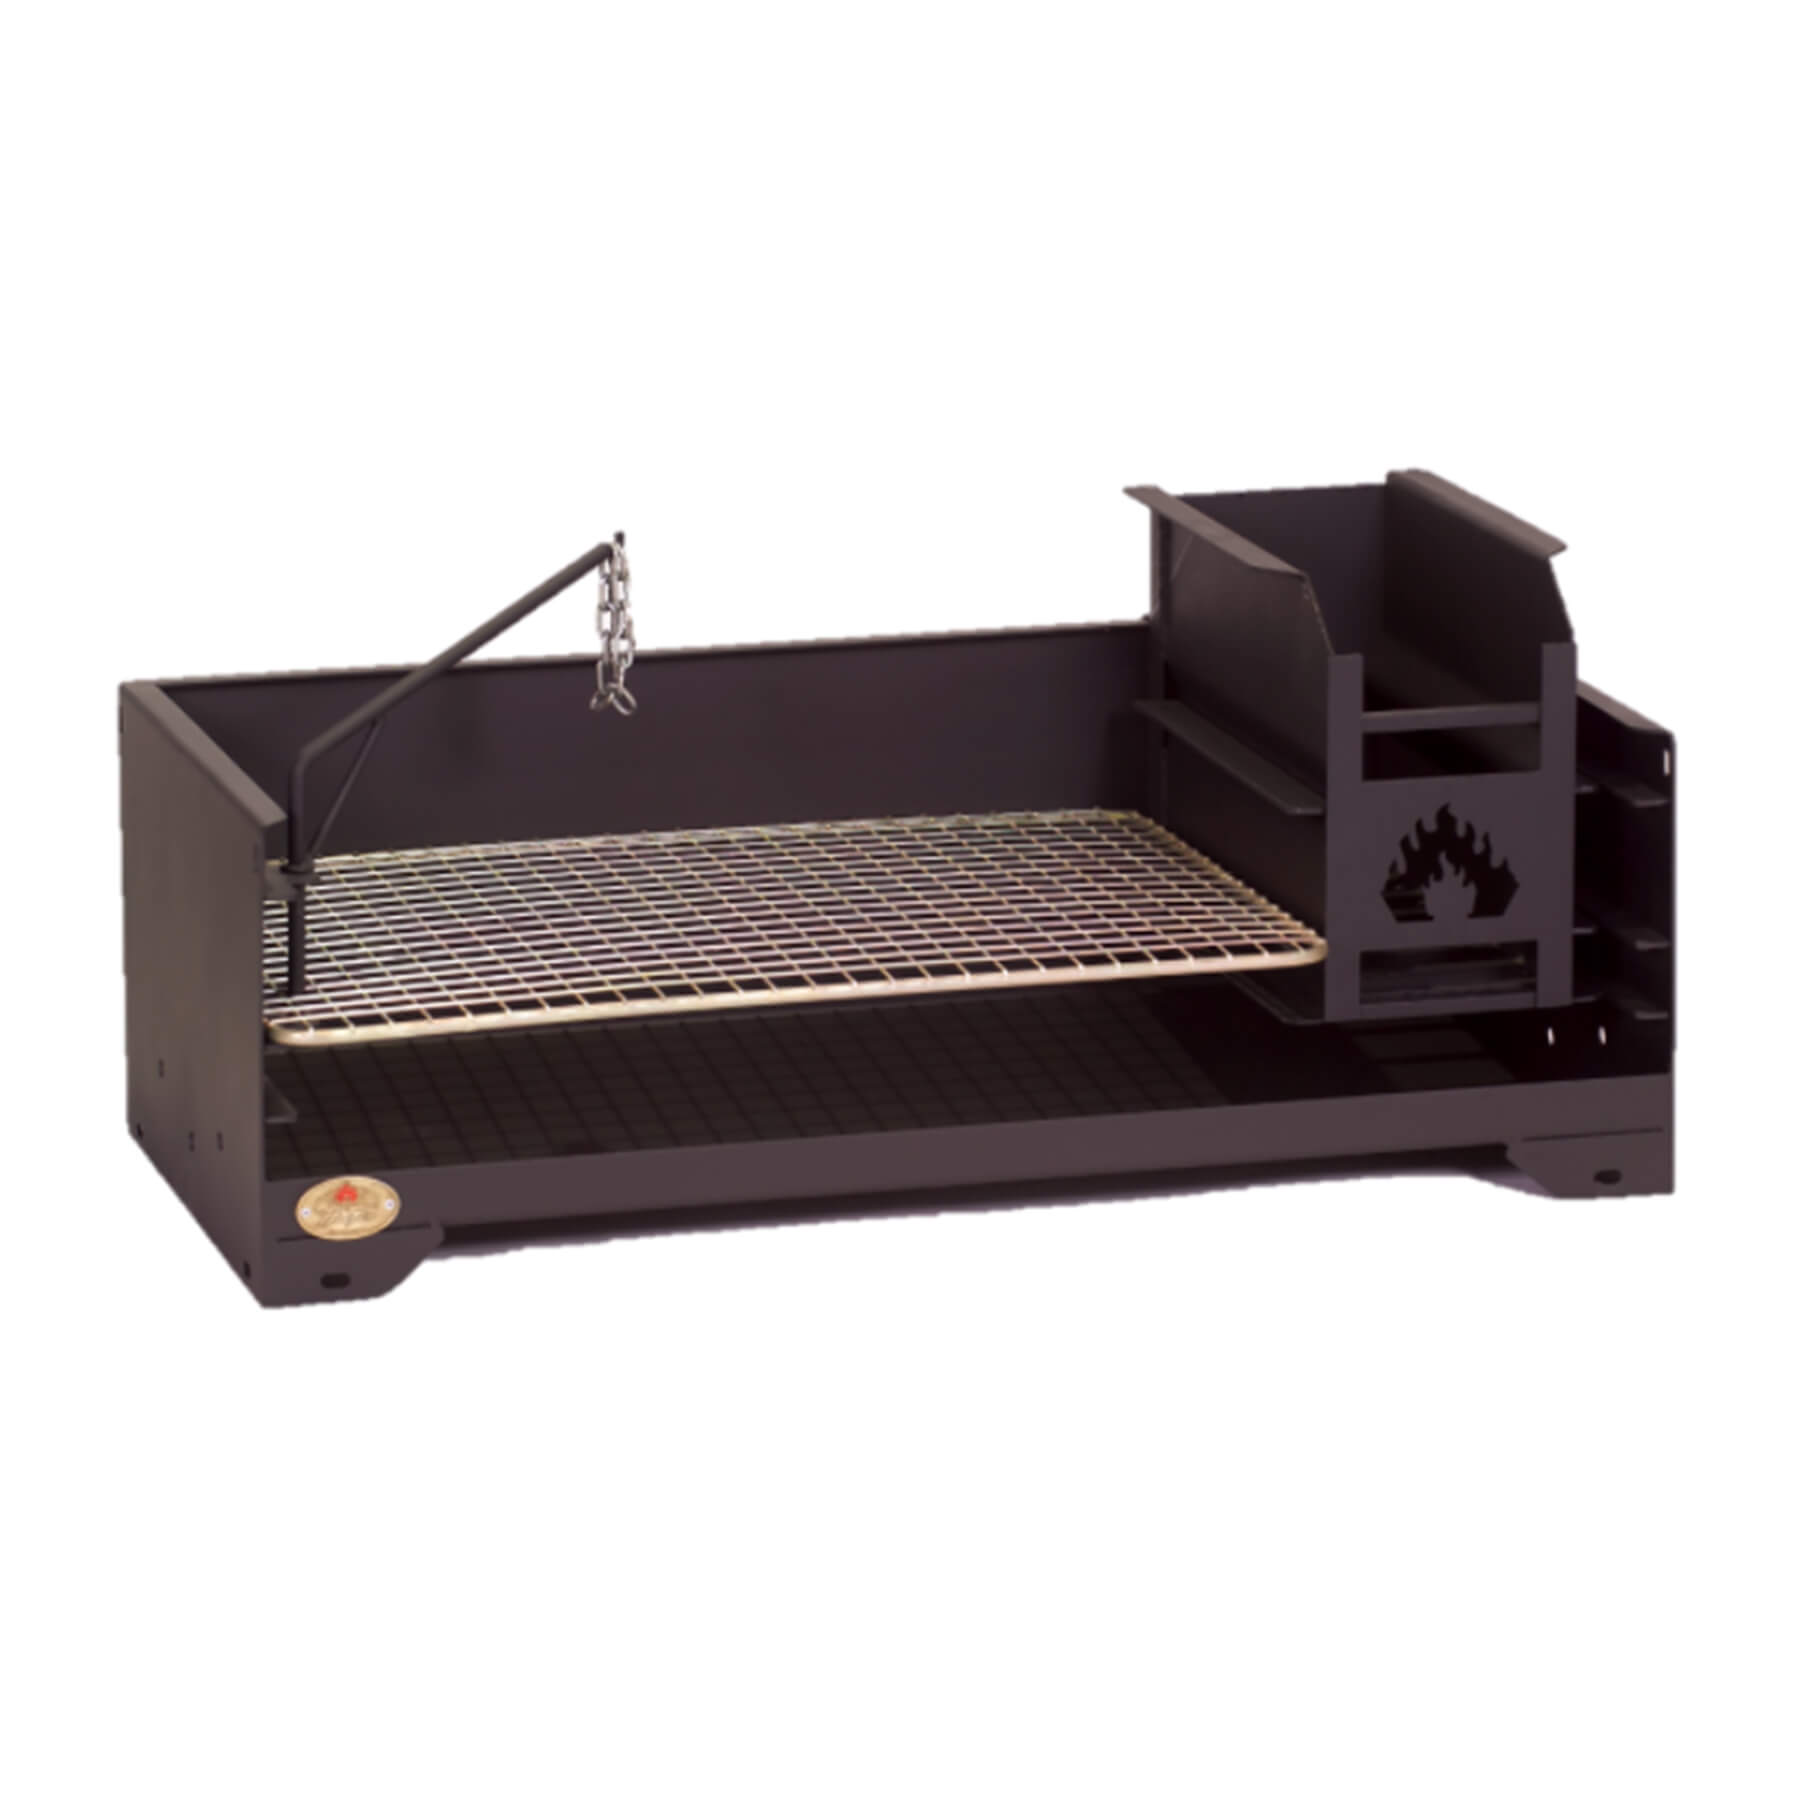 Braais-Freestanding-1000-Table-Wood-Home-Fires